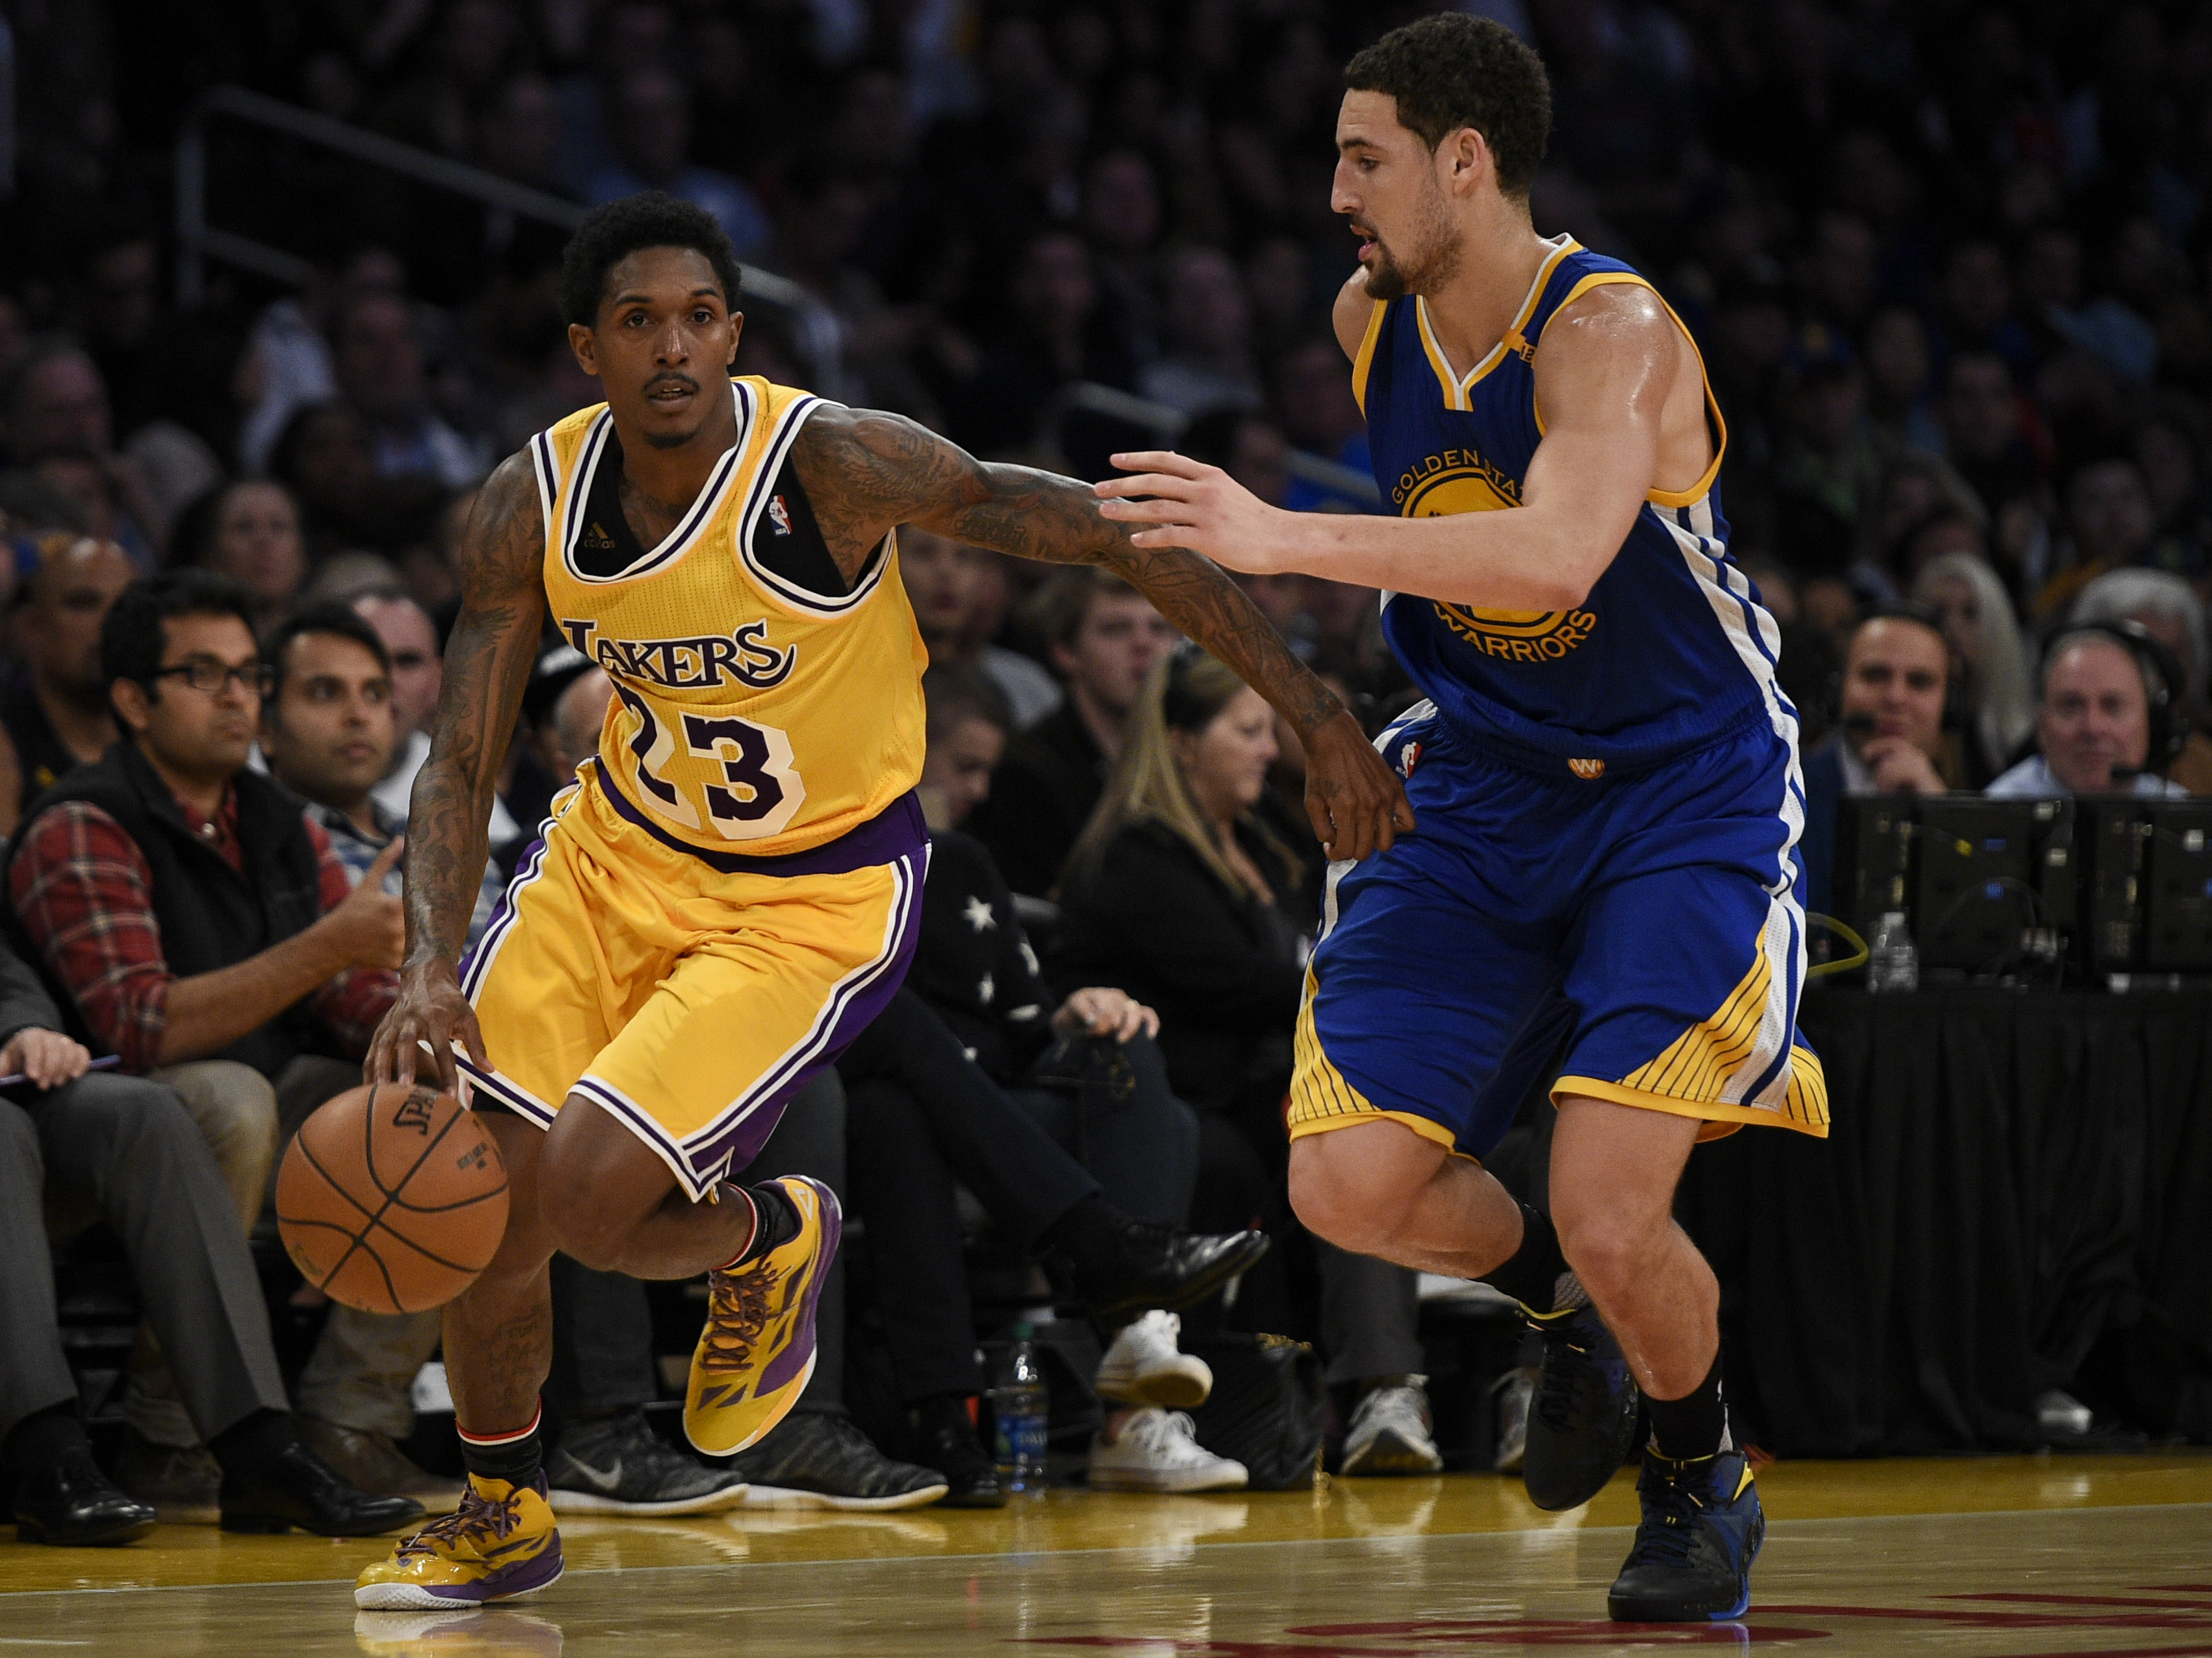 9654358-nba-golden-state-warriors-at-los-angeles-lakers-1